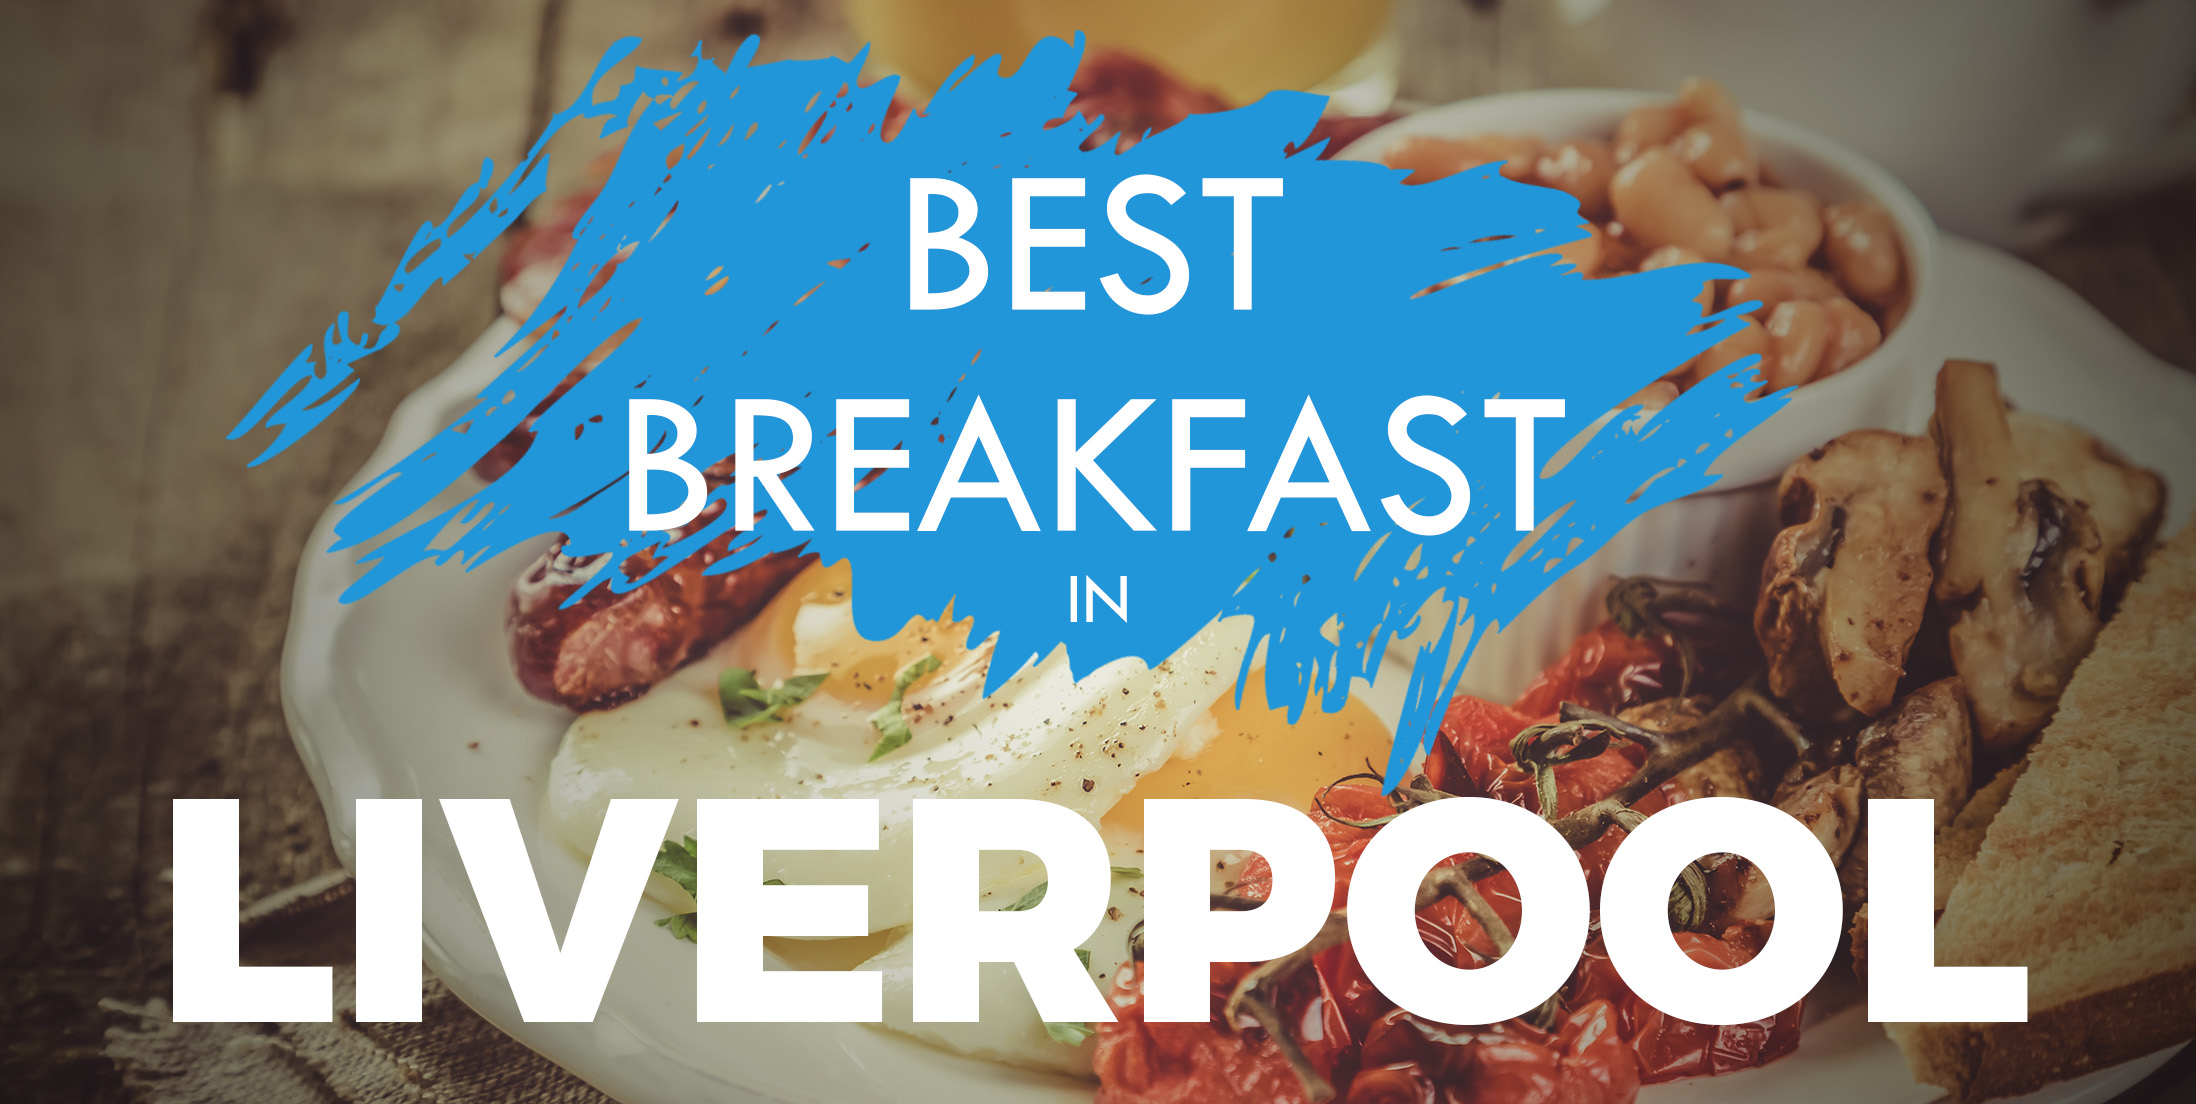 Best Breakfast in Liverpool